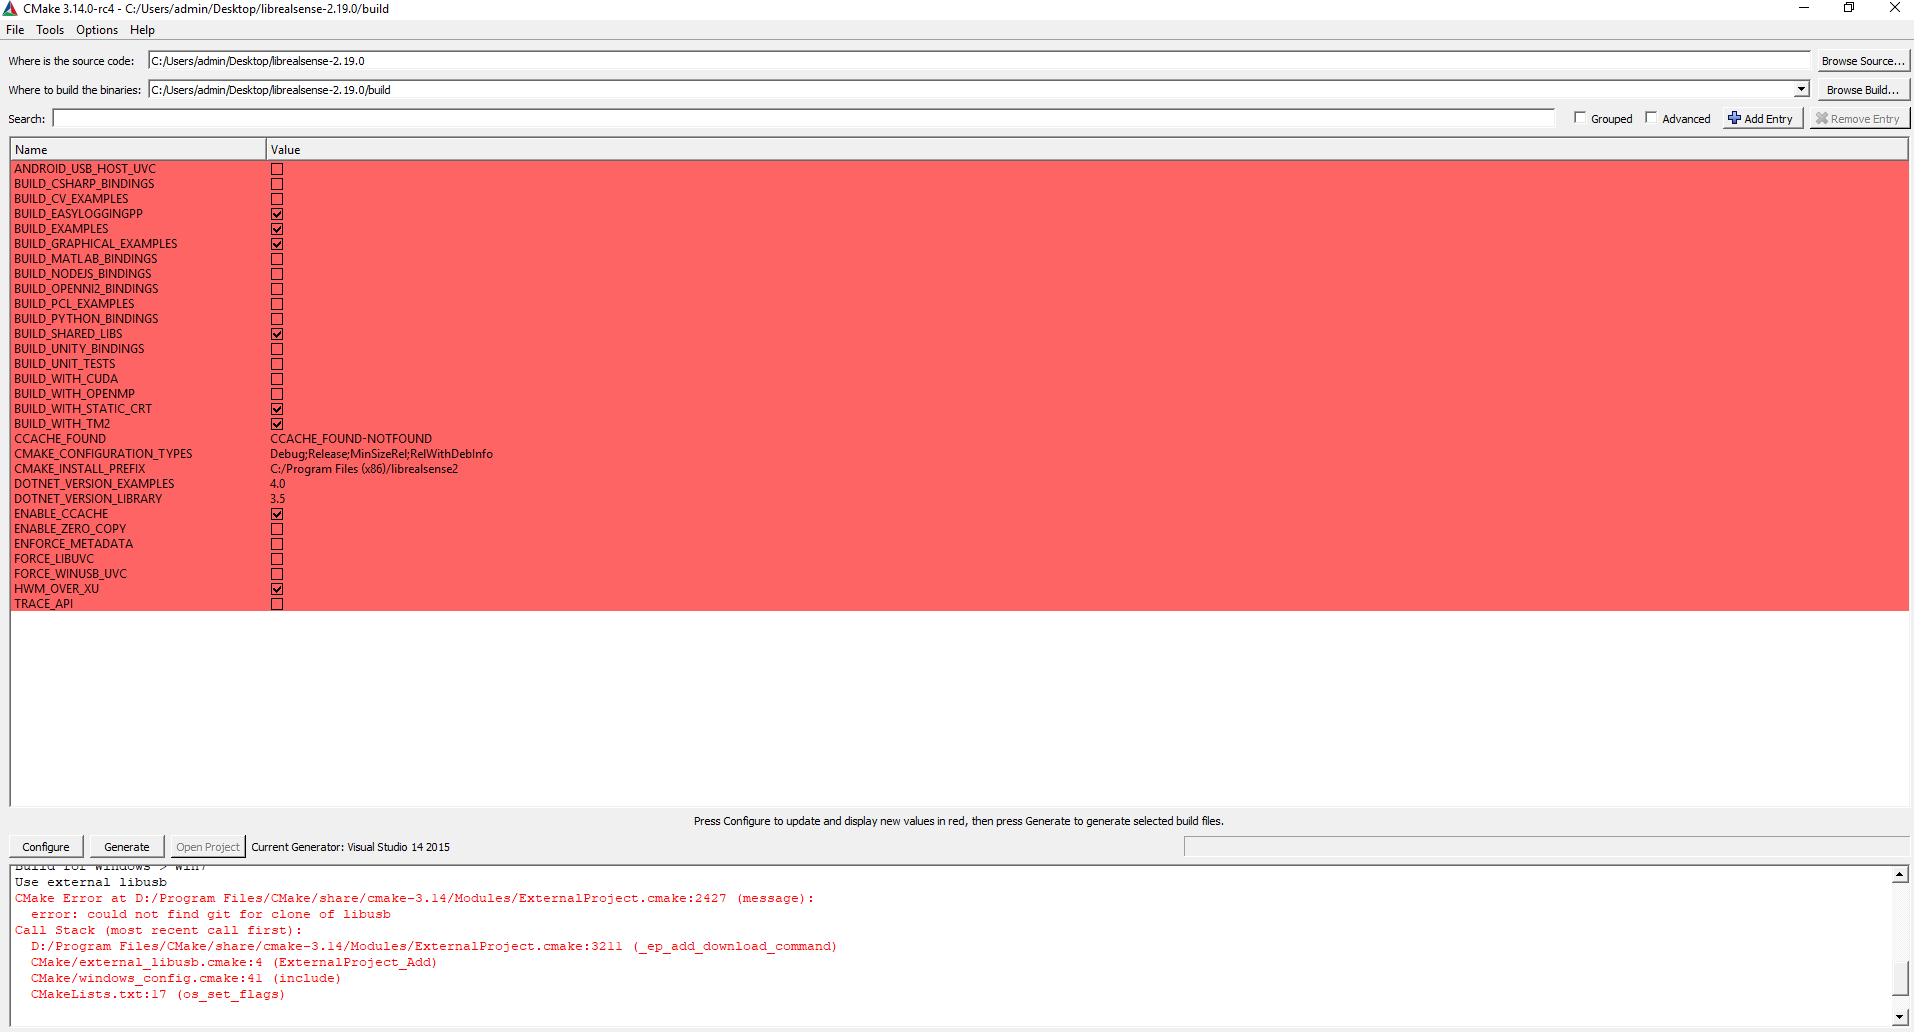 When I use Cmake to build the source,there is the error